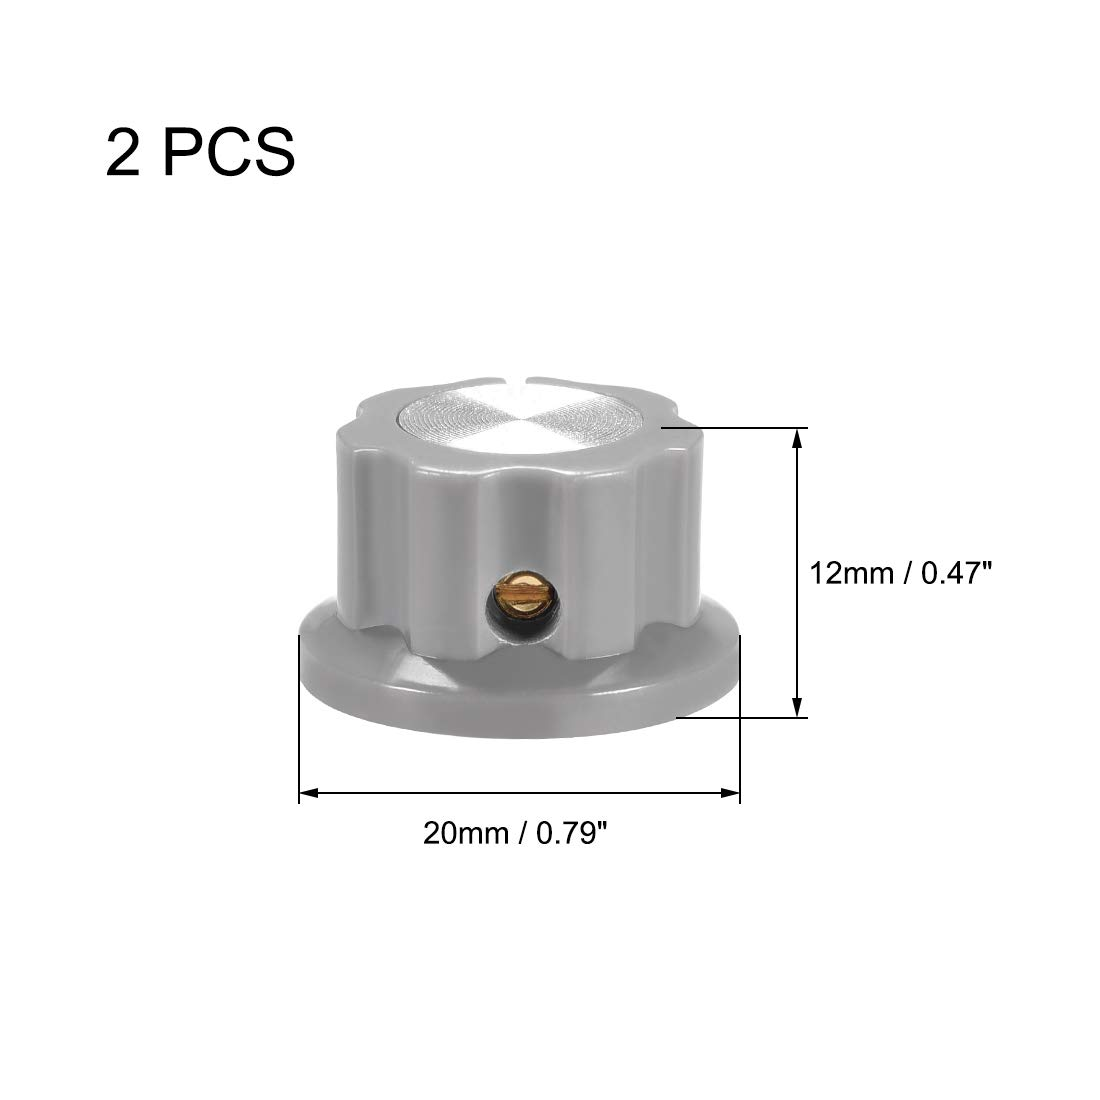 uxcell 2pcs 6.4mm Shaft Hole Potentiometer Volume Control Rotary Knobs Effect Pedal Knobs Purple